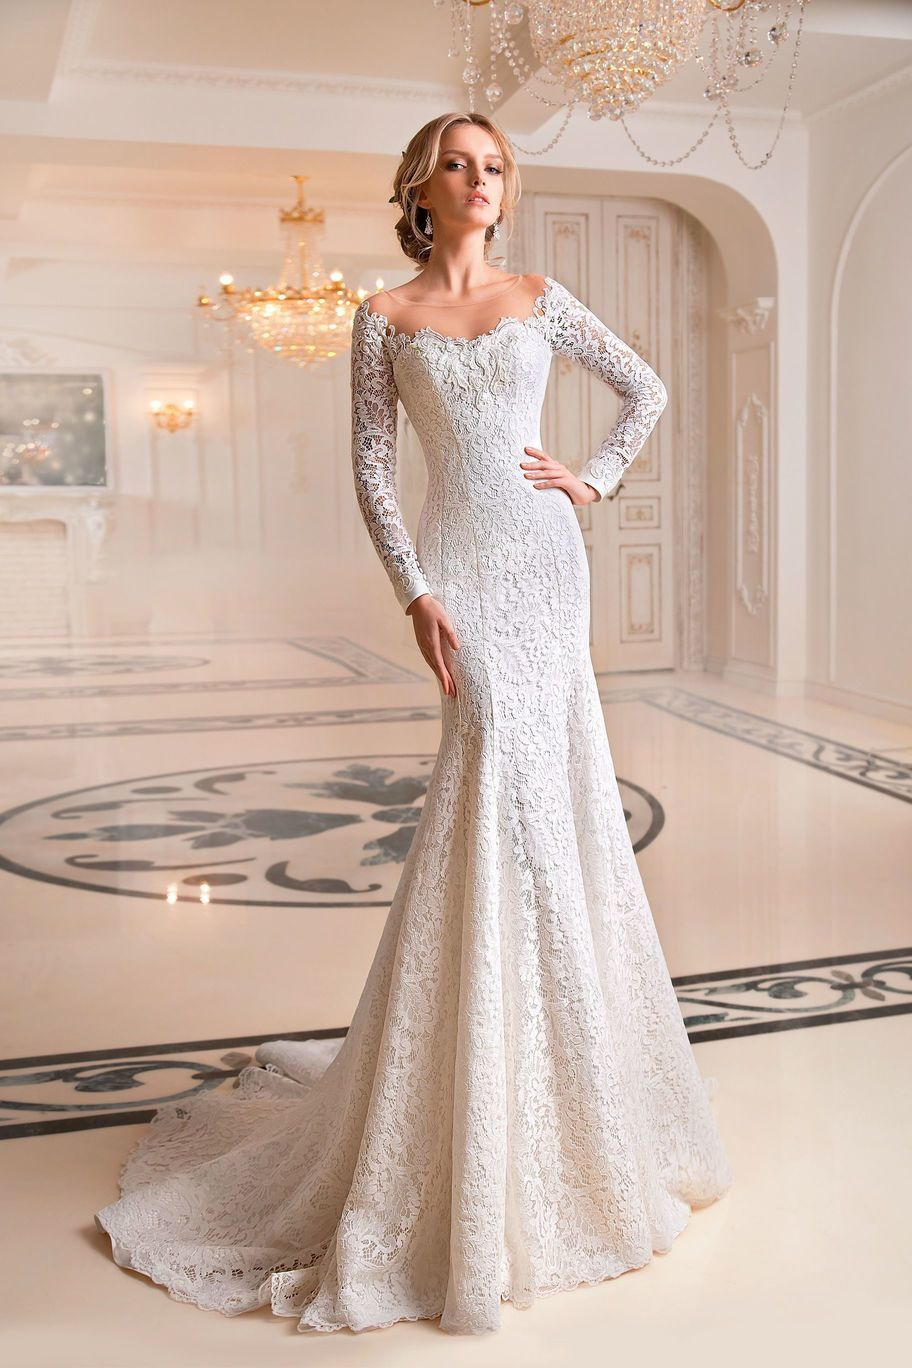 Gorgeous Dresses By European Designer Tatiana Kaplun Only At Charme Gaby Bridal In Clearwater Fl Wedding Gown Guide Wedding Dresses Dream Wedding Dresses [ 1368 x 912 Pixel ]